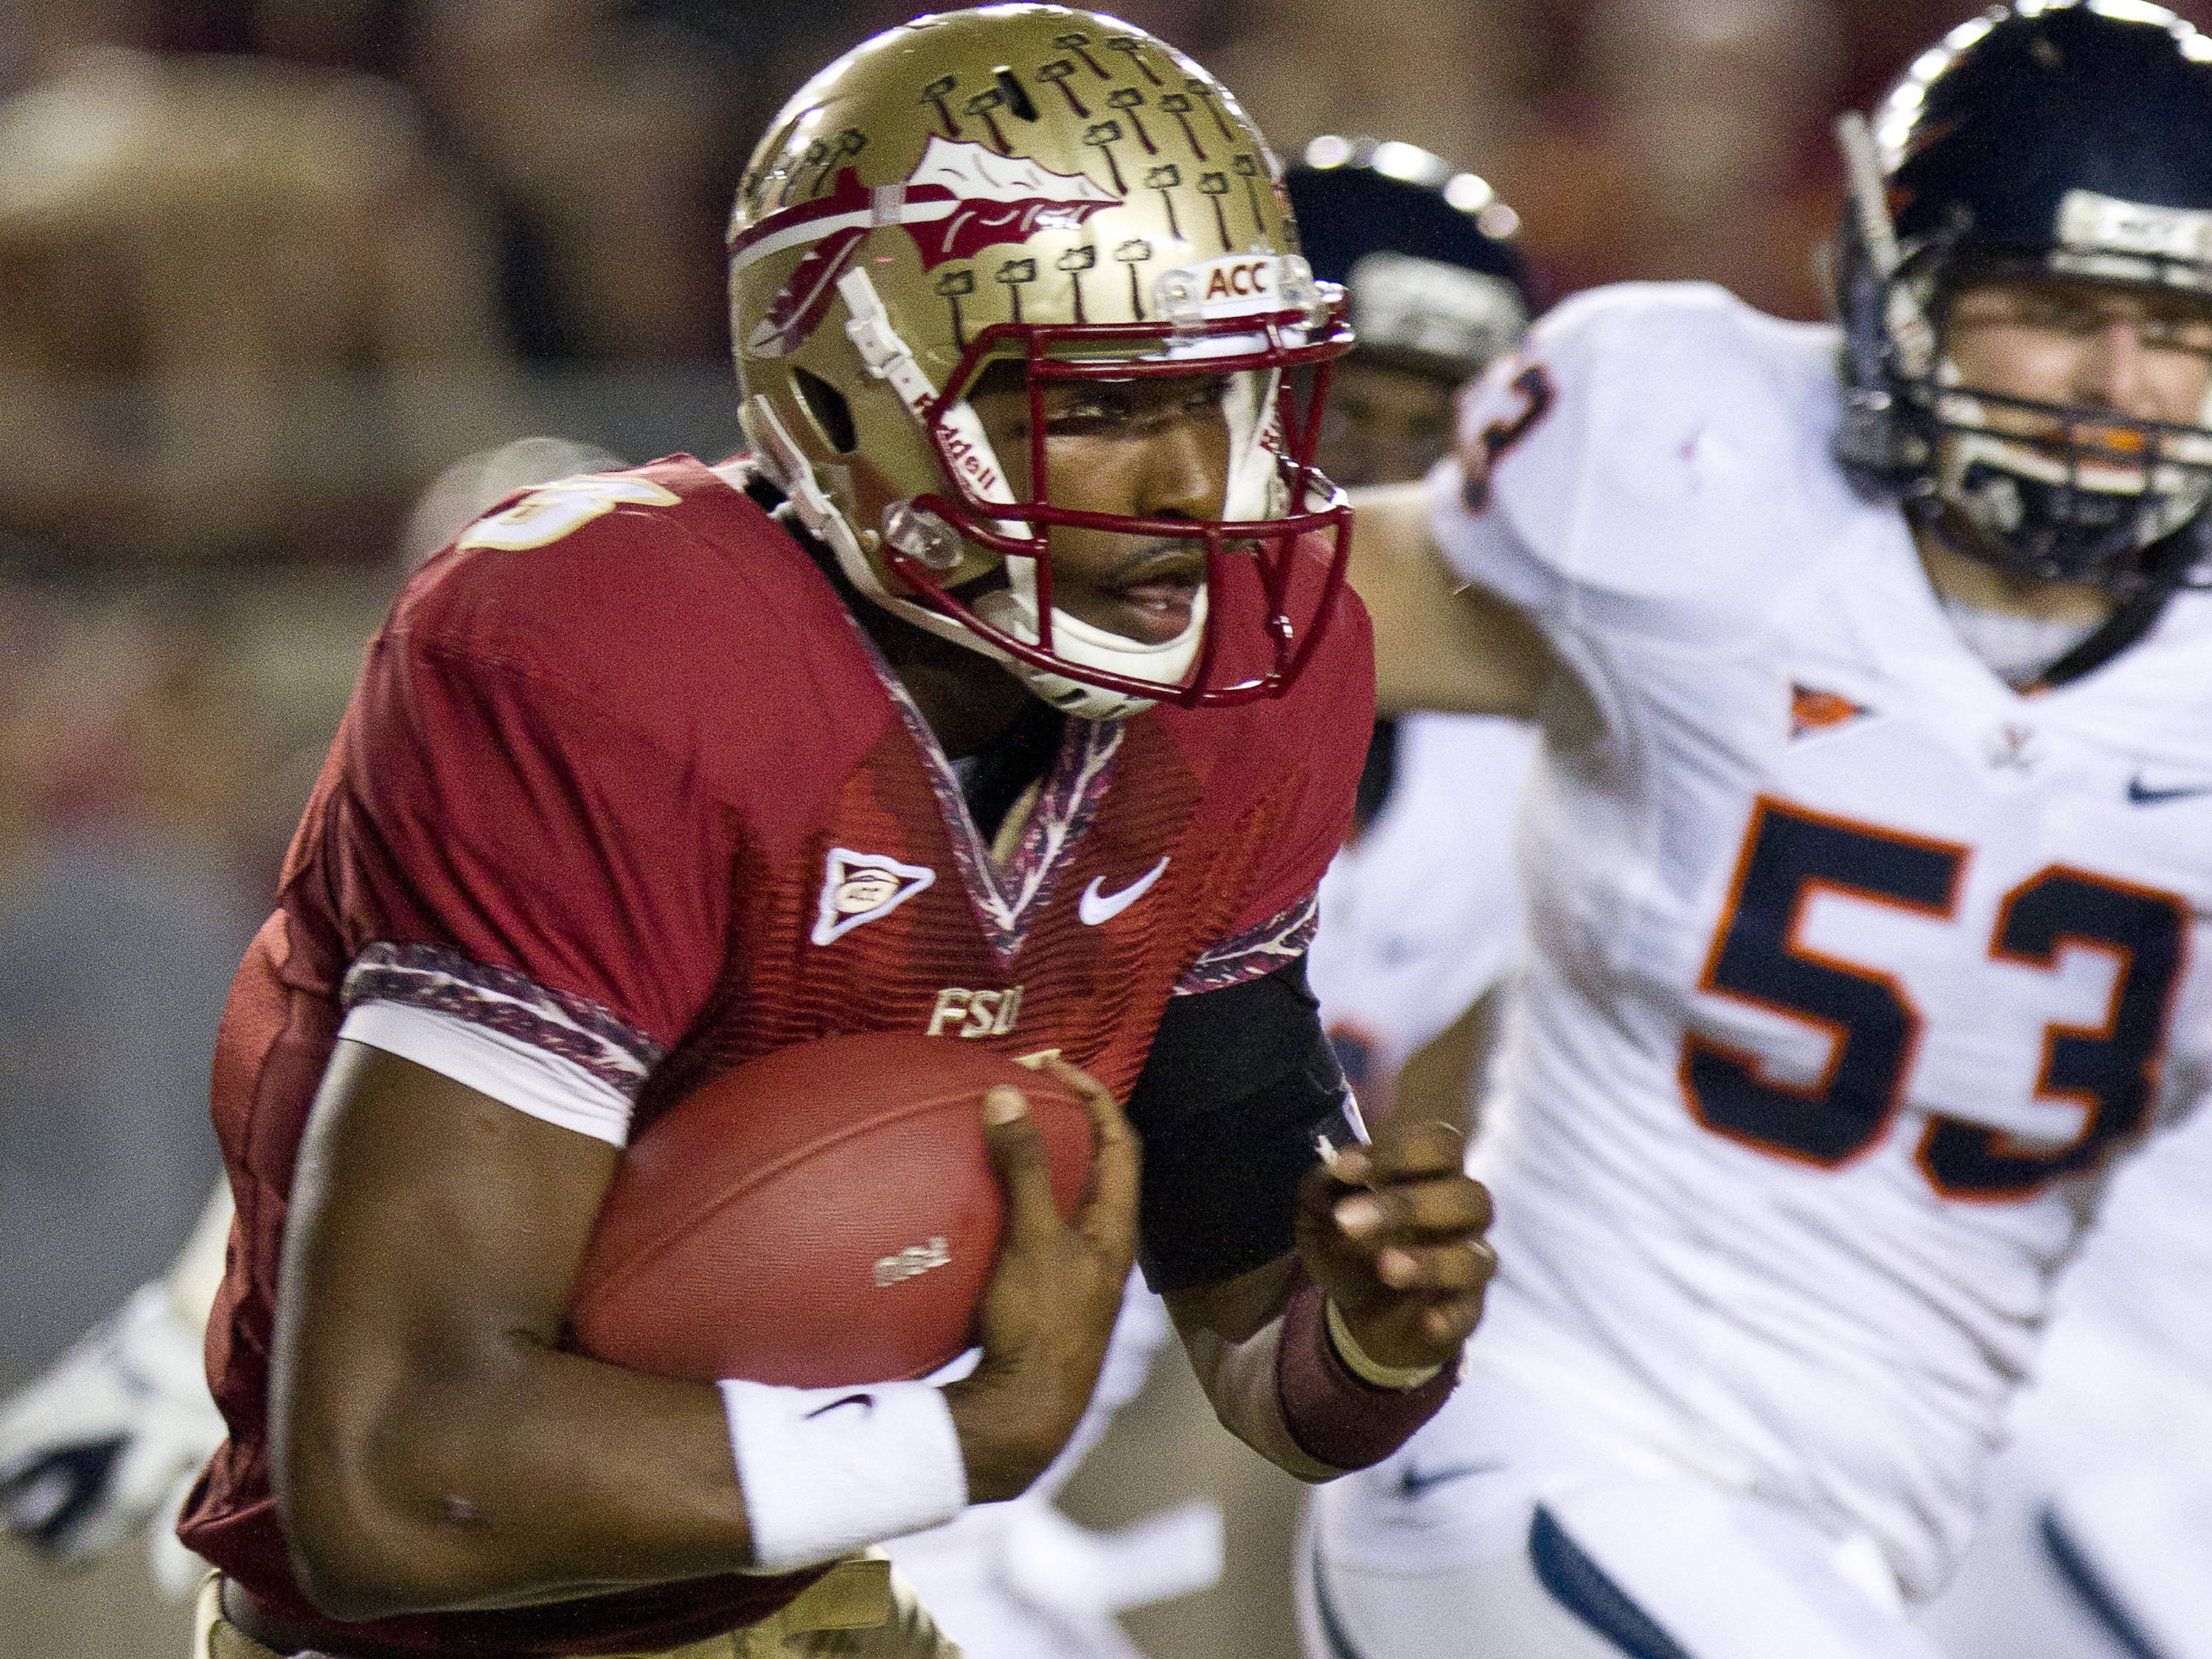 EJ Manuel (3) carries the ball up the field during the game against Virginia on November 19, 2011.